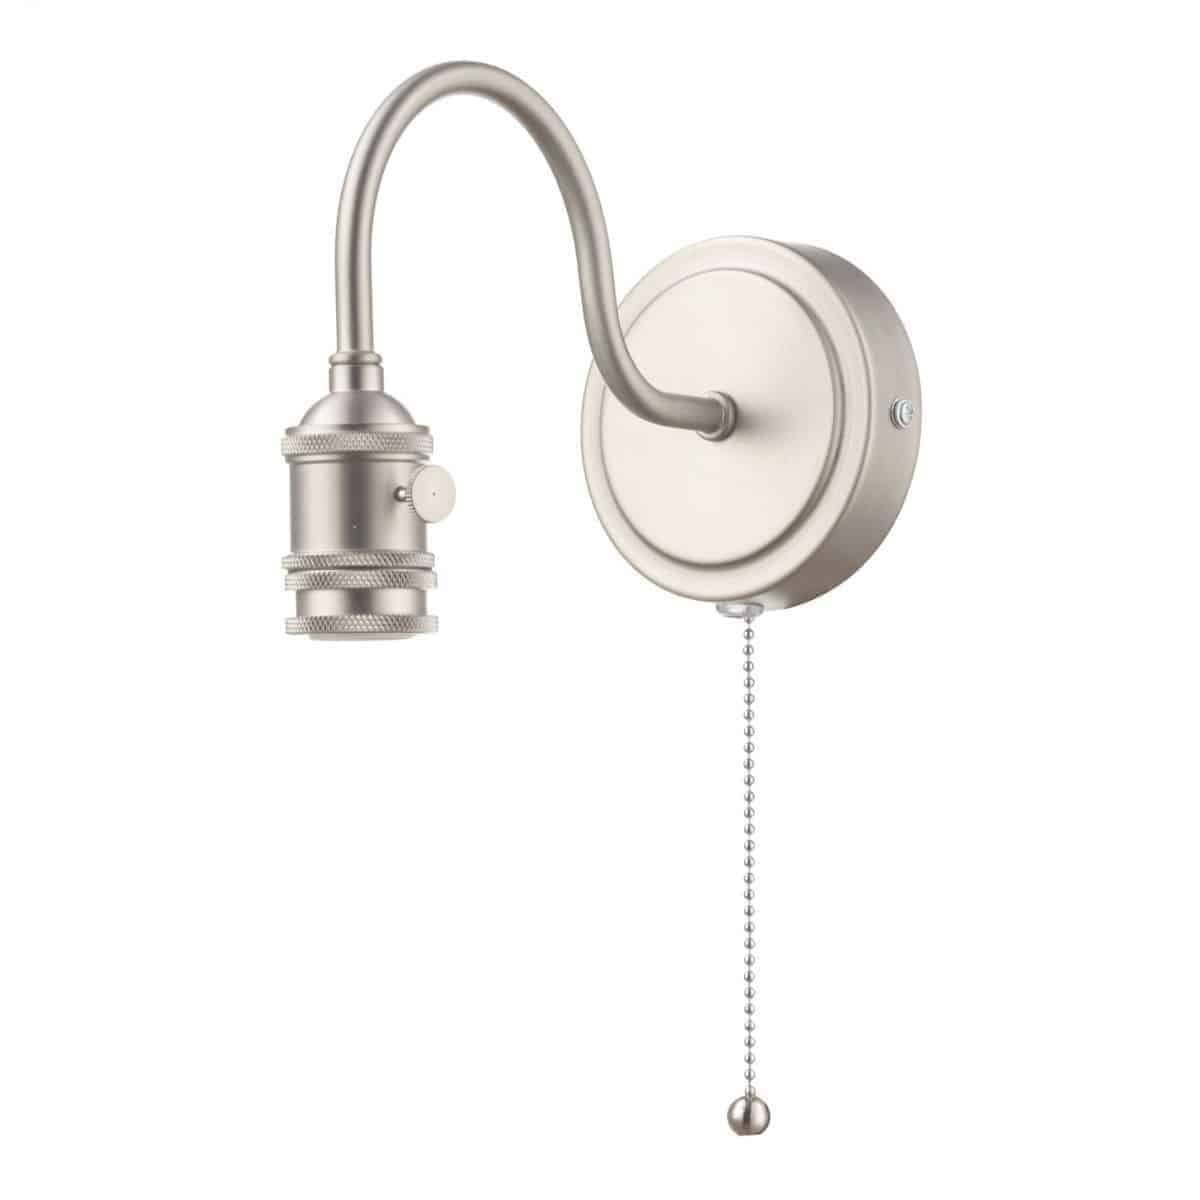 Dar SPW0761 Accessory 1 Light Wall Light Antique Chrome Bracket Only